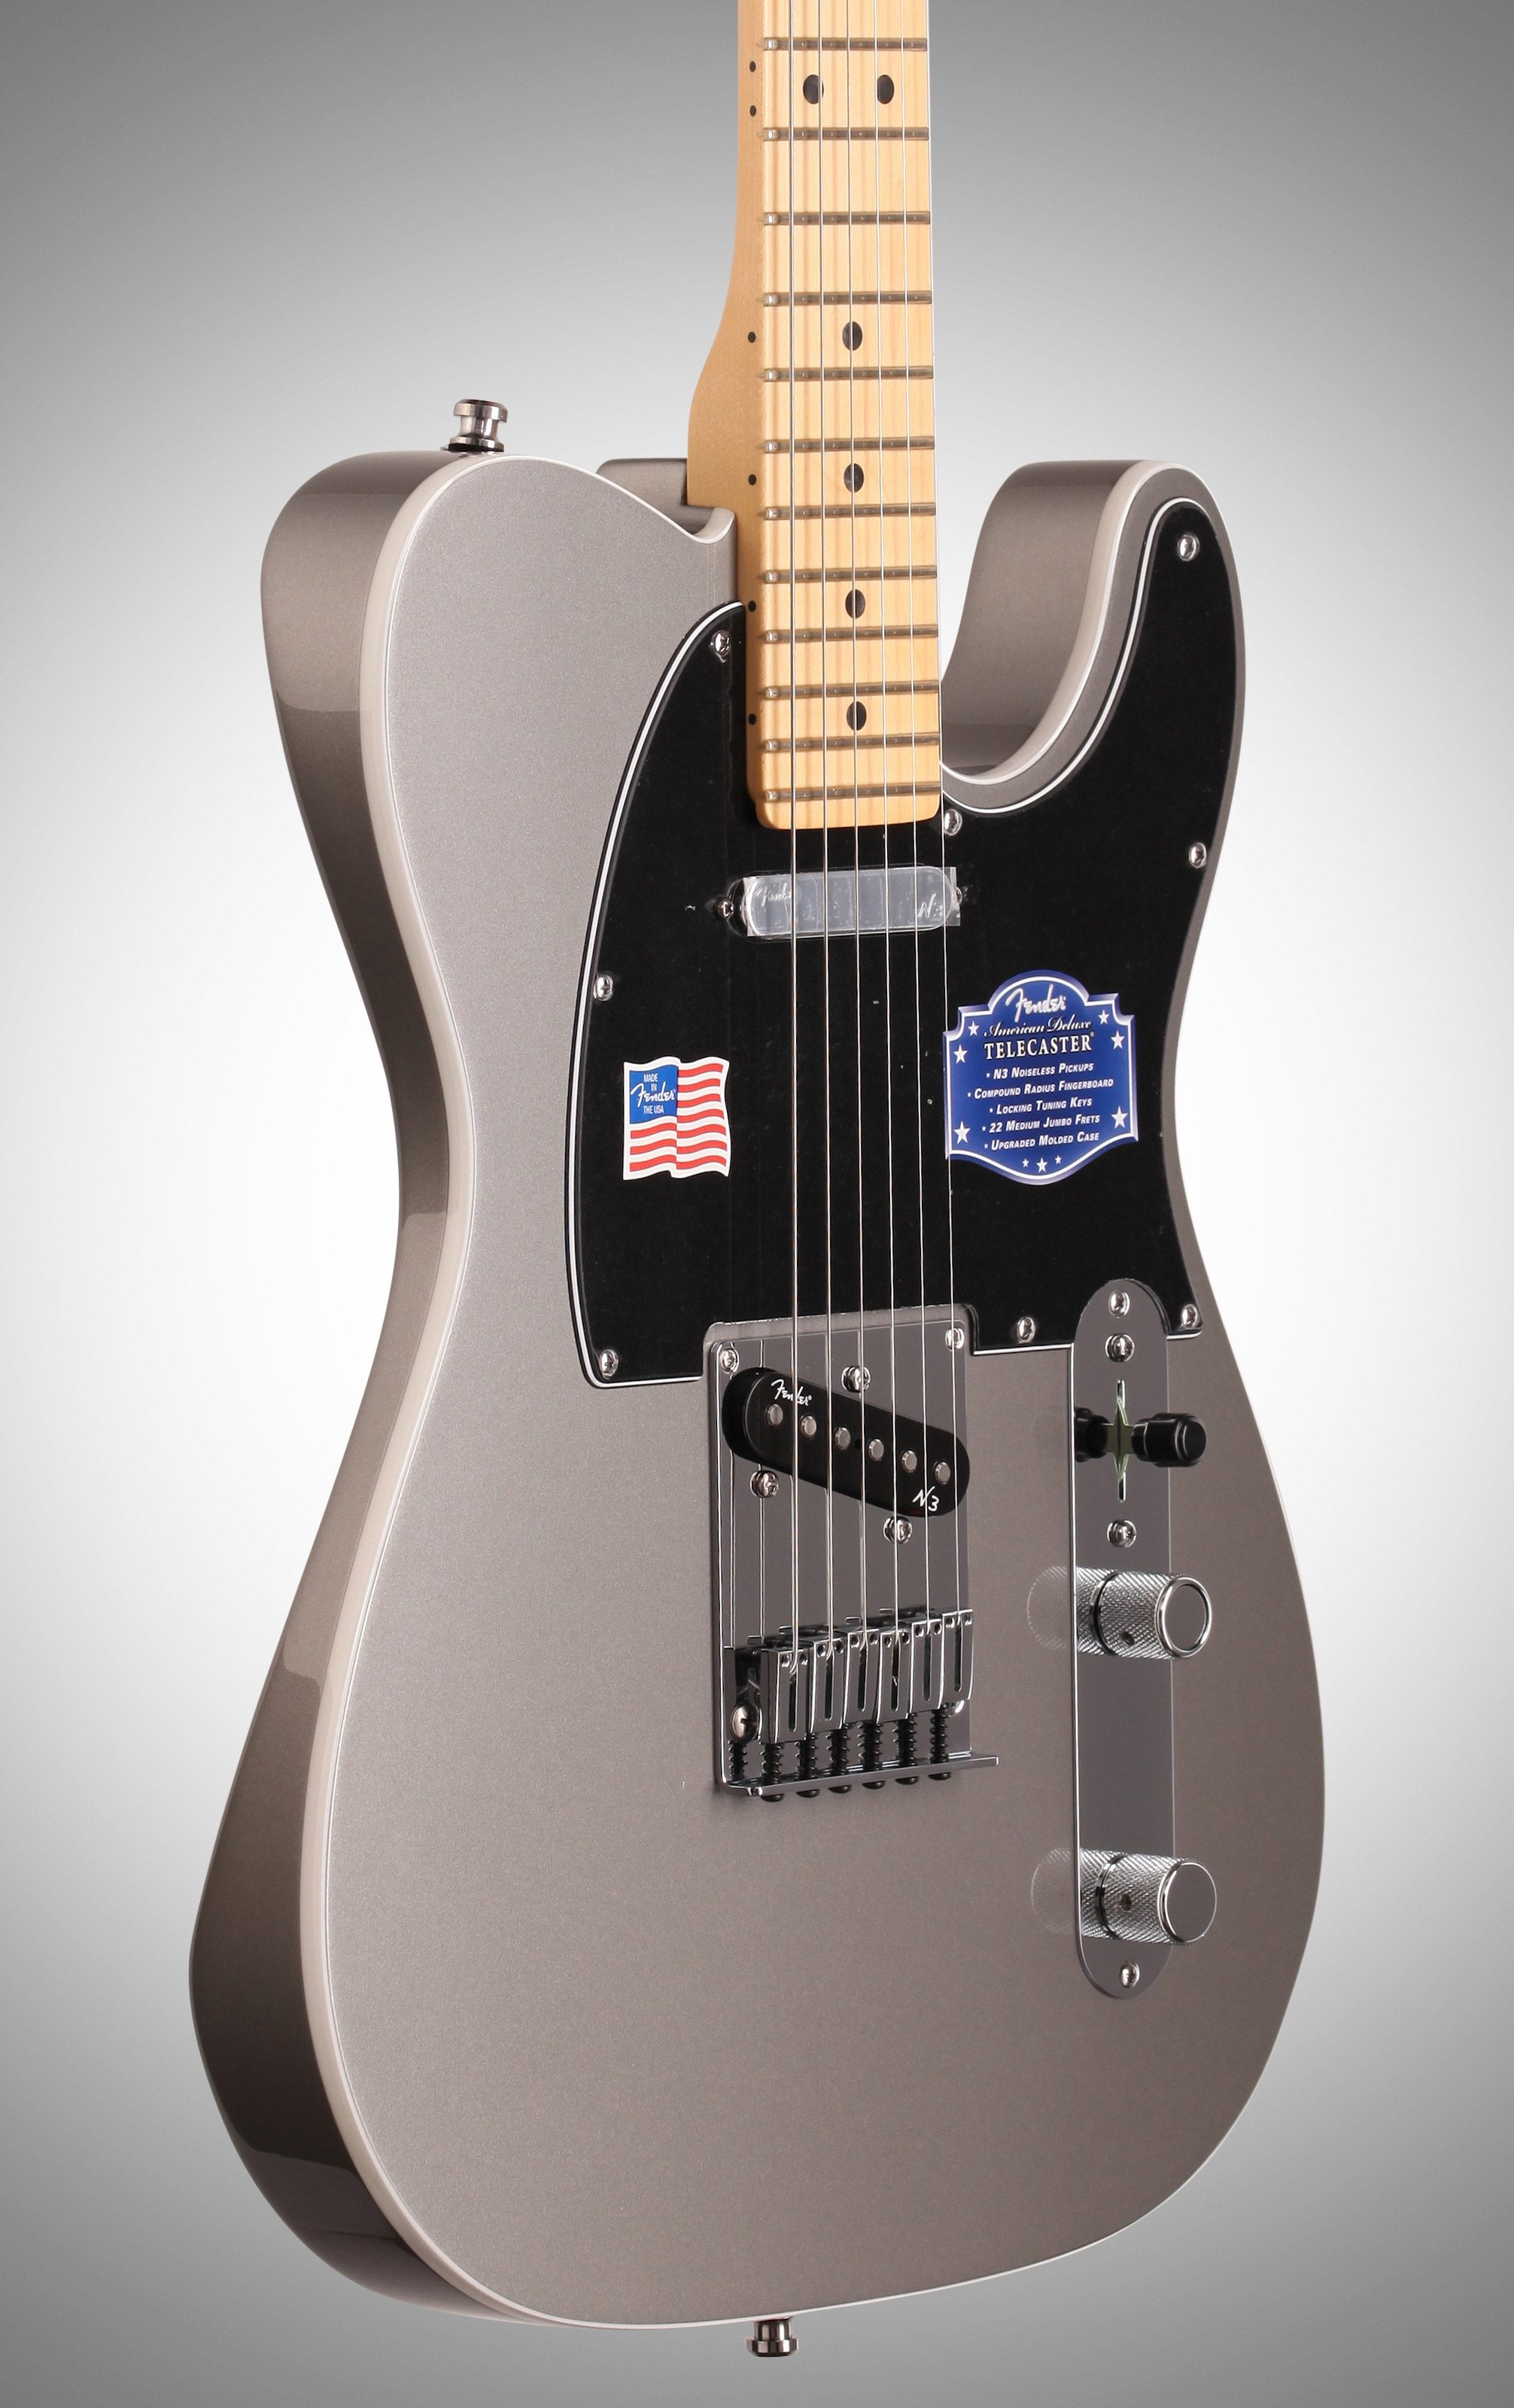 fender telecaster s1 wiring diagram harley davidson gas golf cart american deluxe maple electric guitar